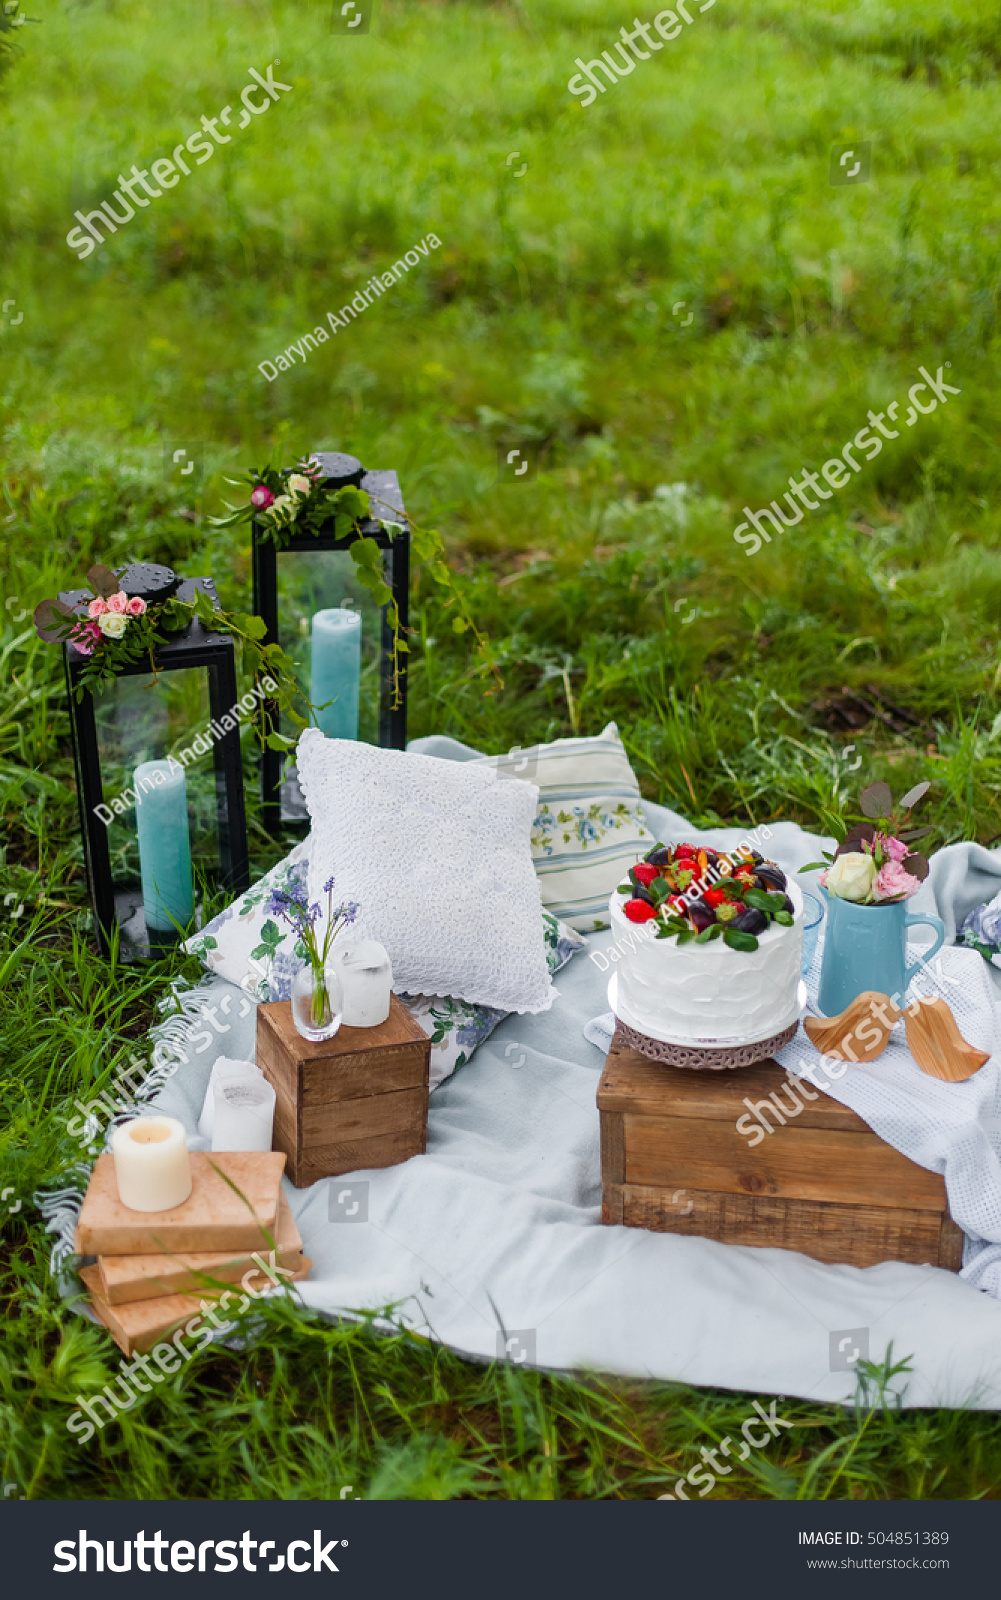 Picnic Decor Picnic Decor Candles Lanterns Flowers White Stock Photo Edit Now